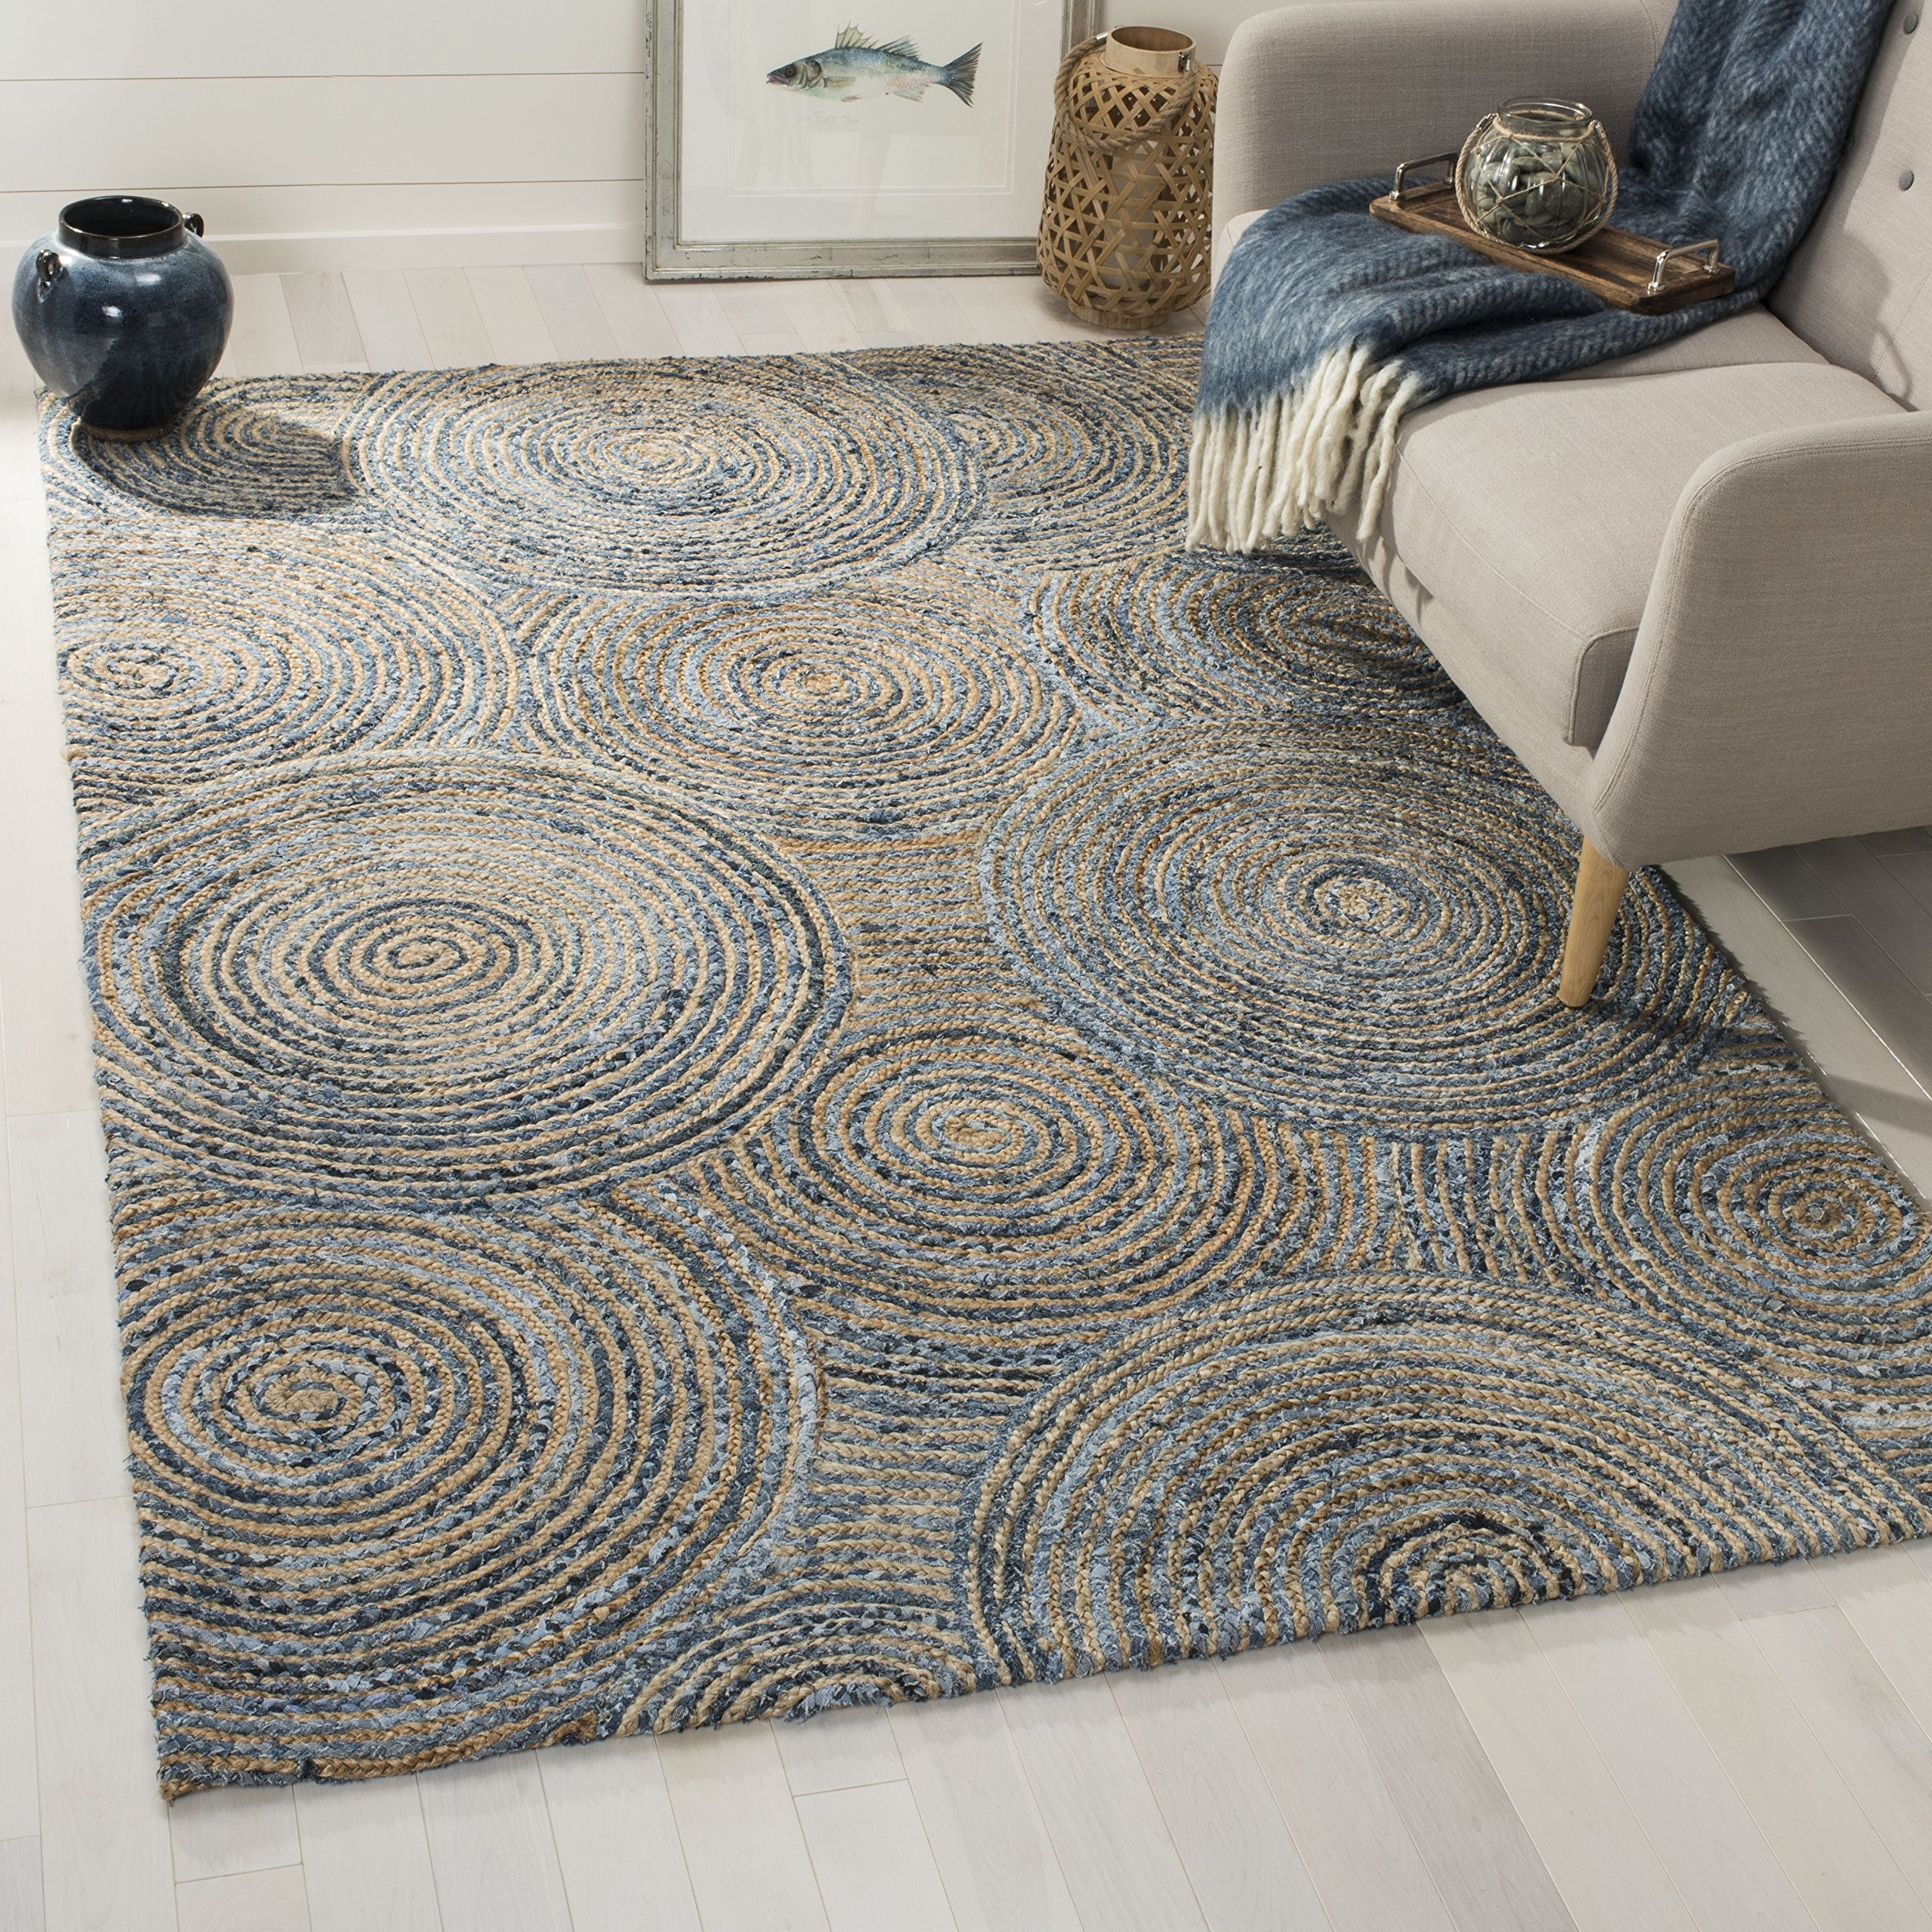 Safavieh CAP603A-8 Cape Cod Collection Flat Weave Handmade Area Rug, 8' x 10', Natural/Denim by Safavieh